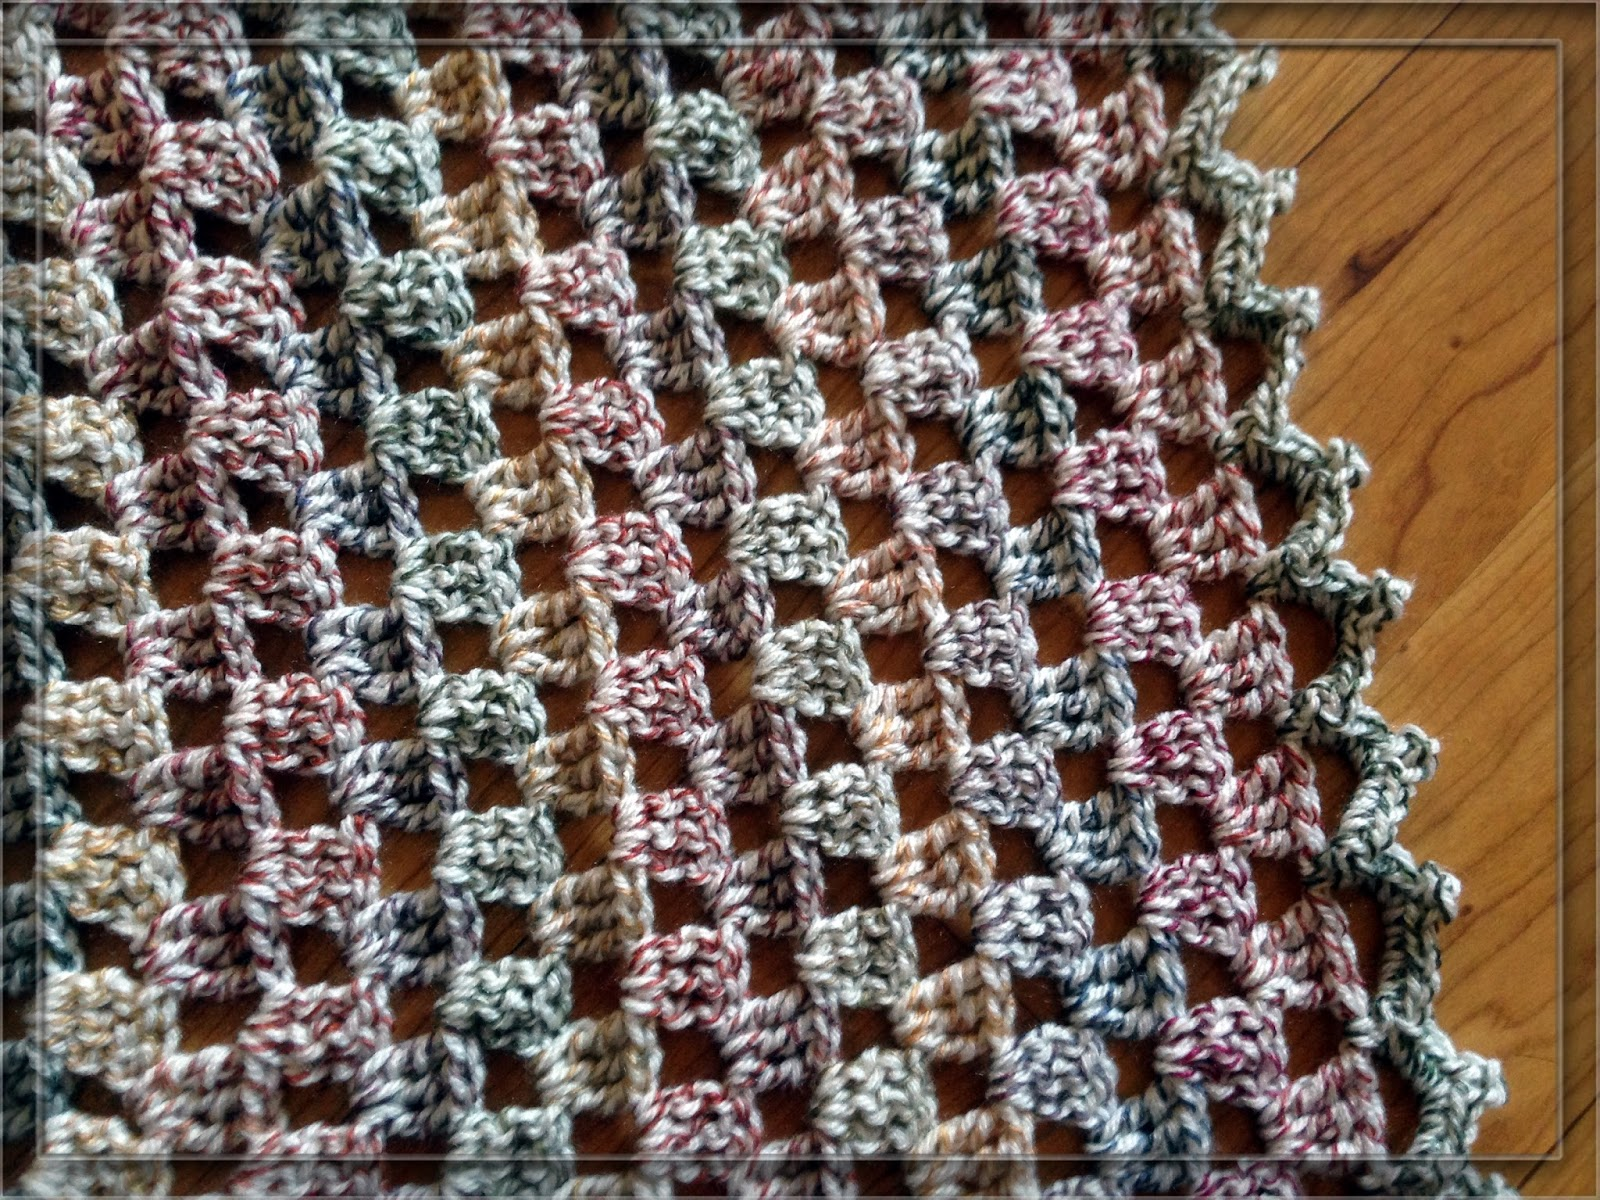 Aprils archives trinity prayer shawl free pattern trinity prayer shawl free pattern bankloansurffo Image collections